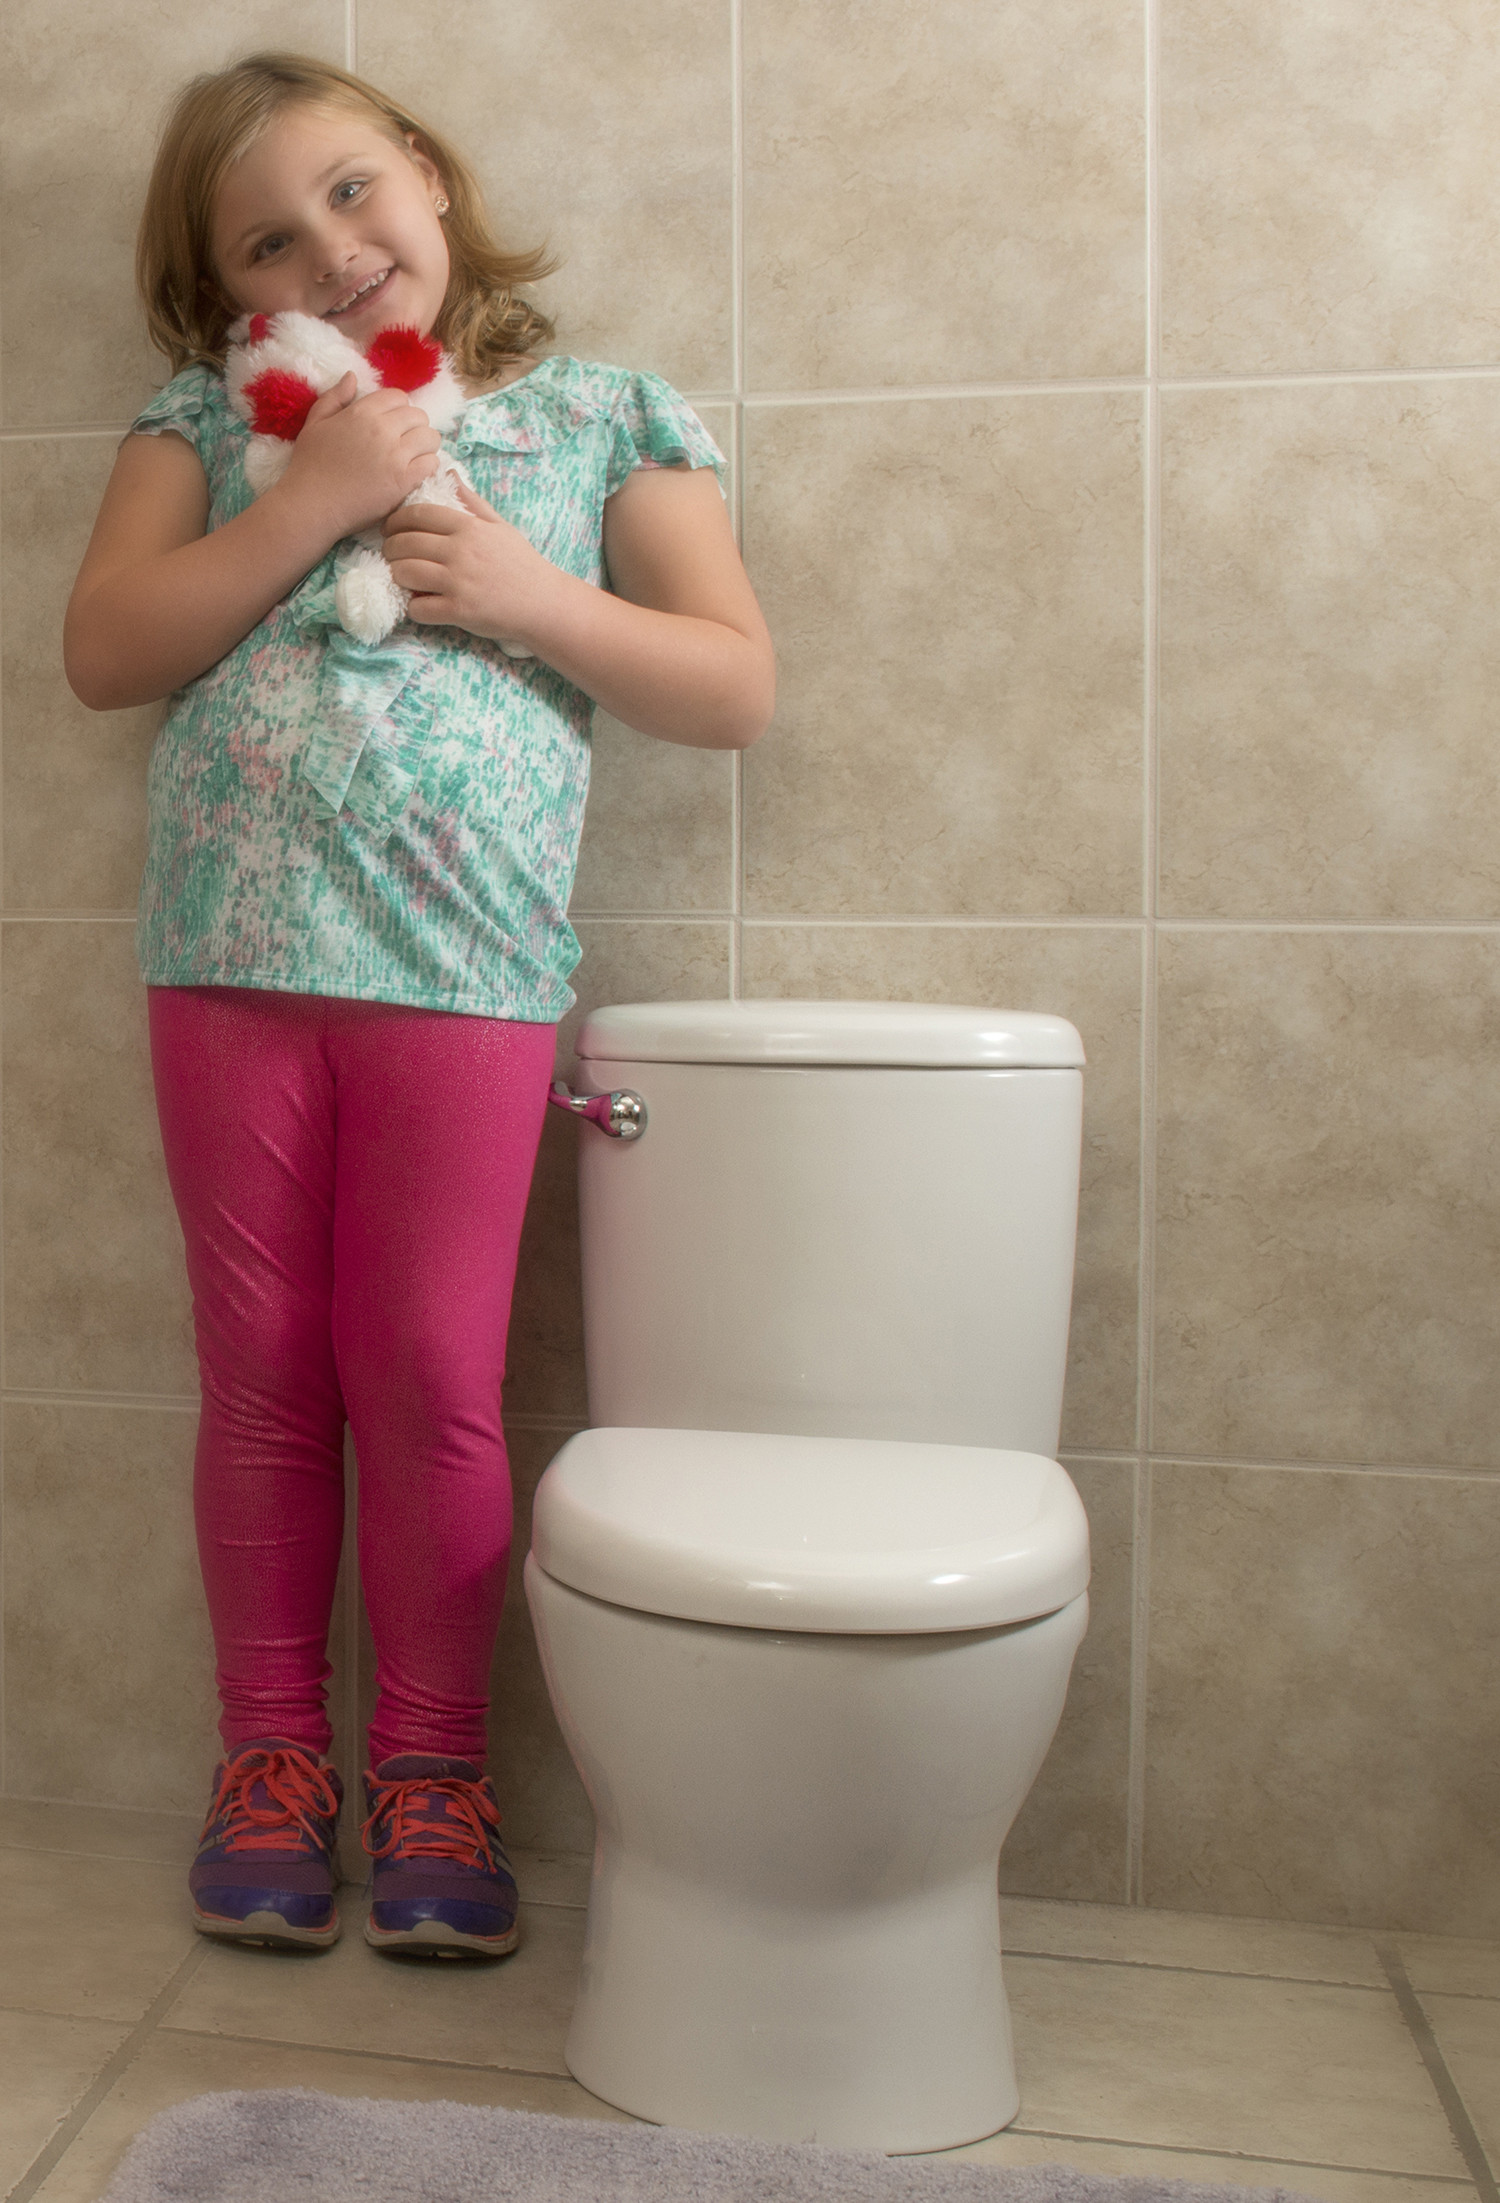 Kids Bathroom Stool  Child sized Toilet Big Hit with Parents